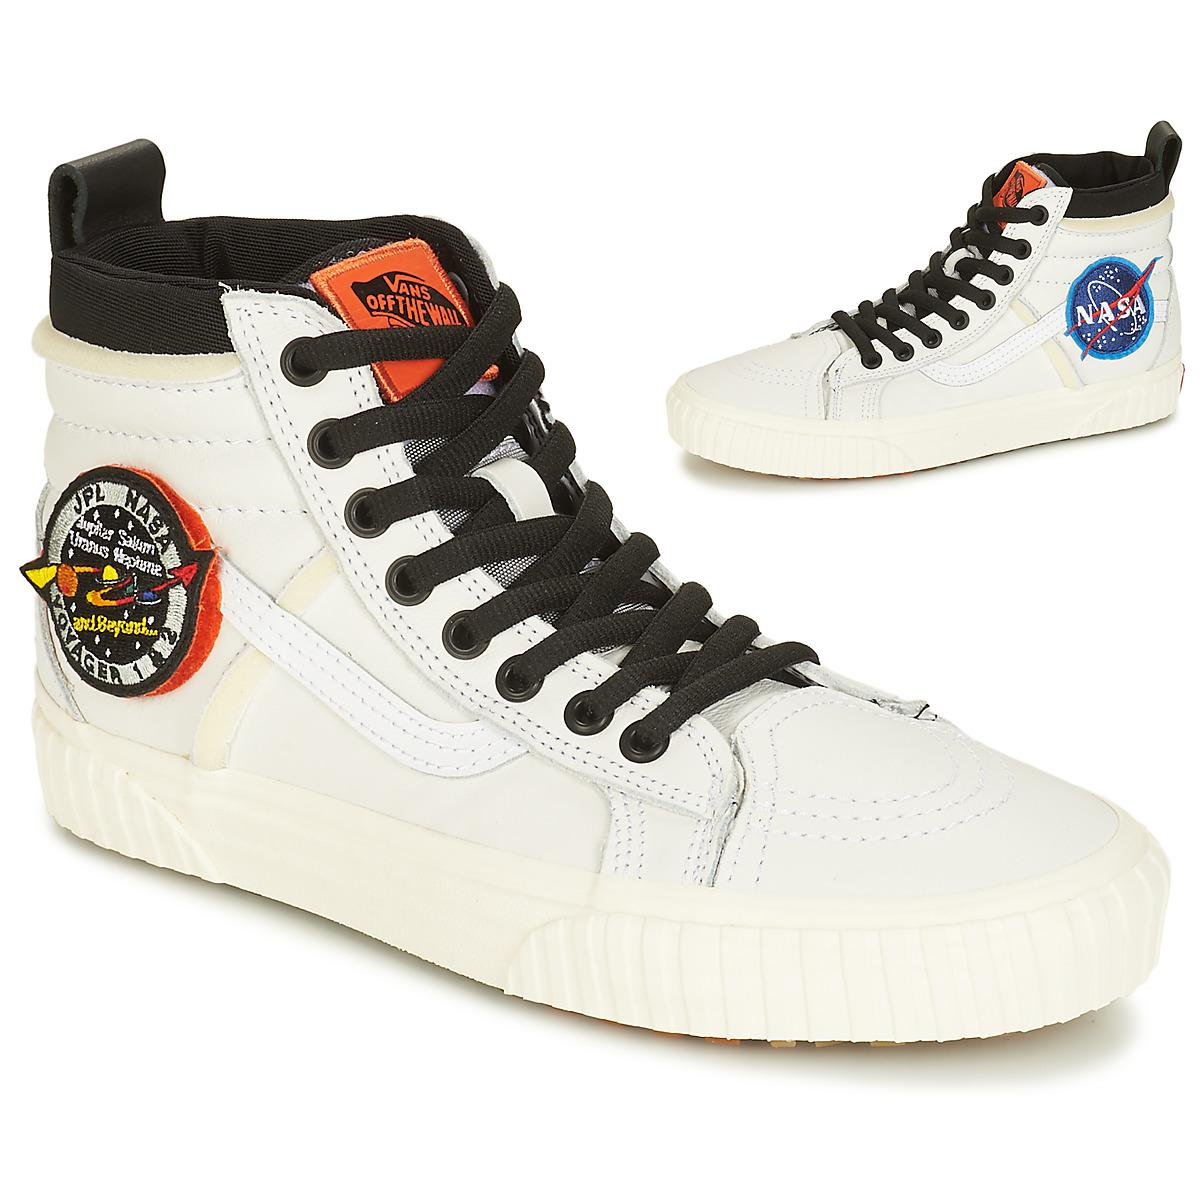 Vans Sk8-hi 46 Mte Dx Men s Shoes (high-top Trainers) In White in ... a269565d3